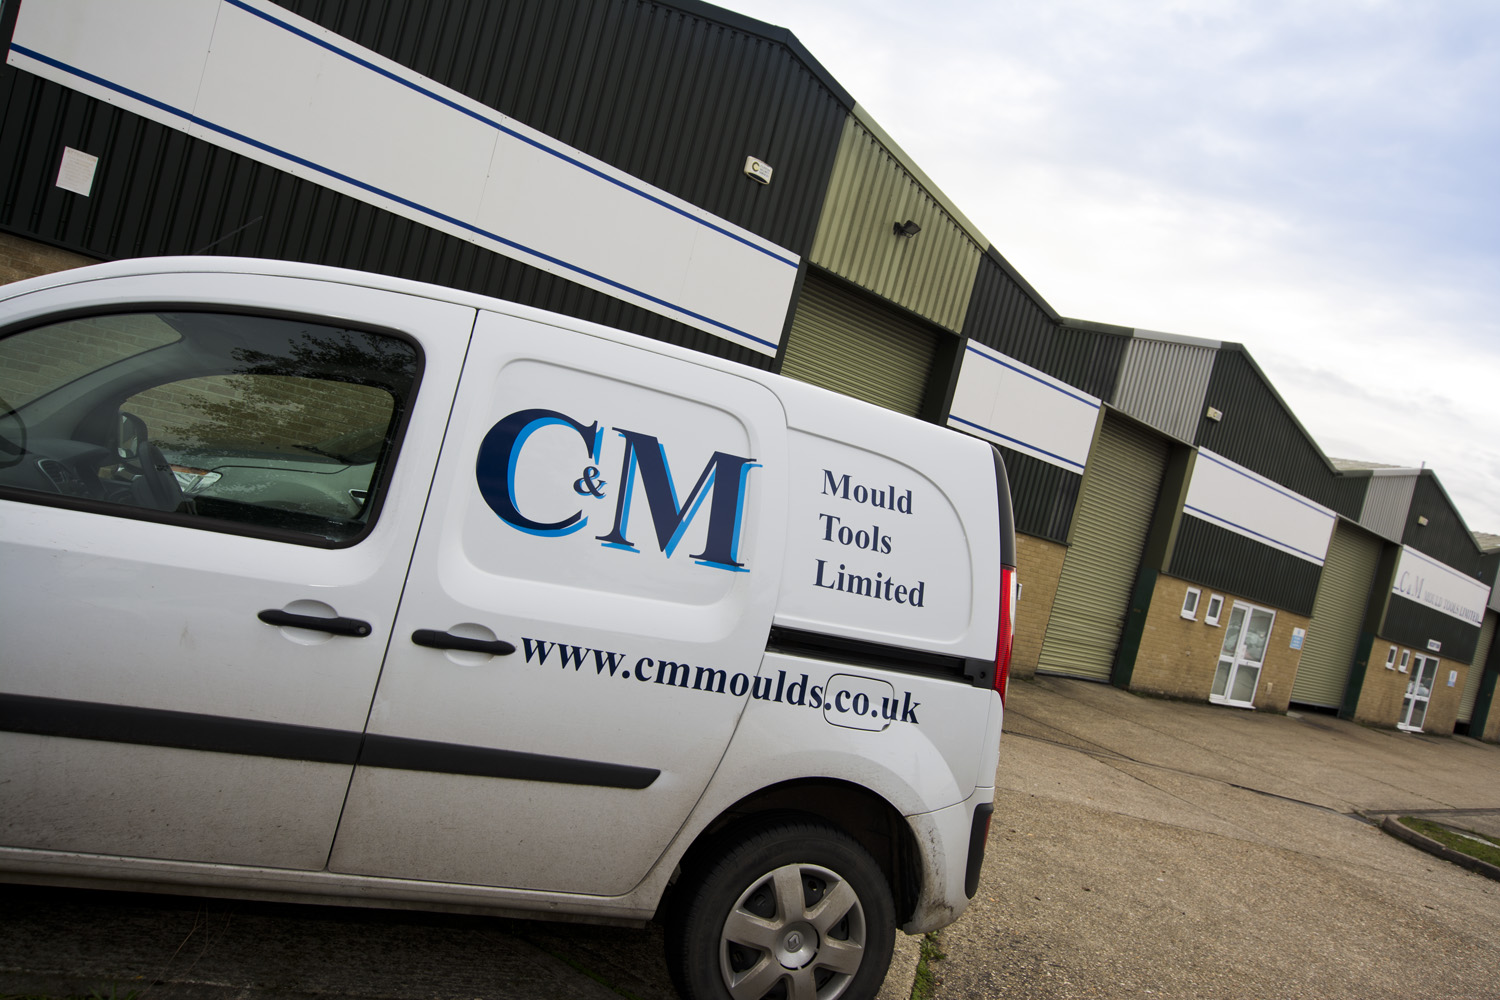 C&M Mould Tools Building